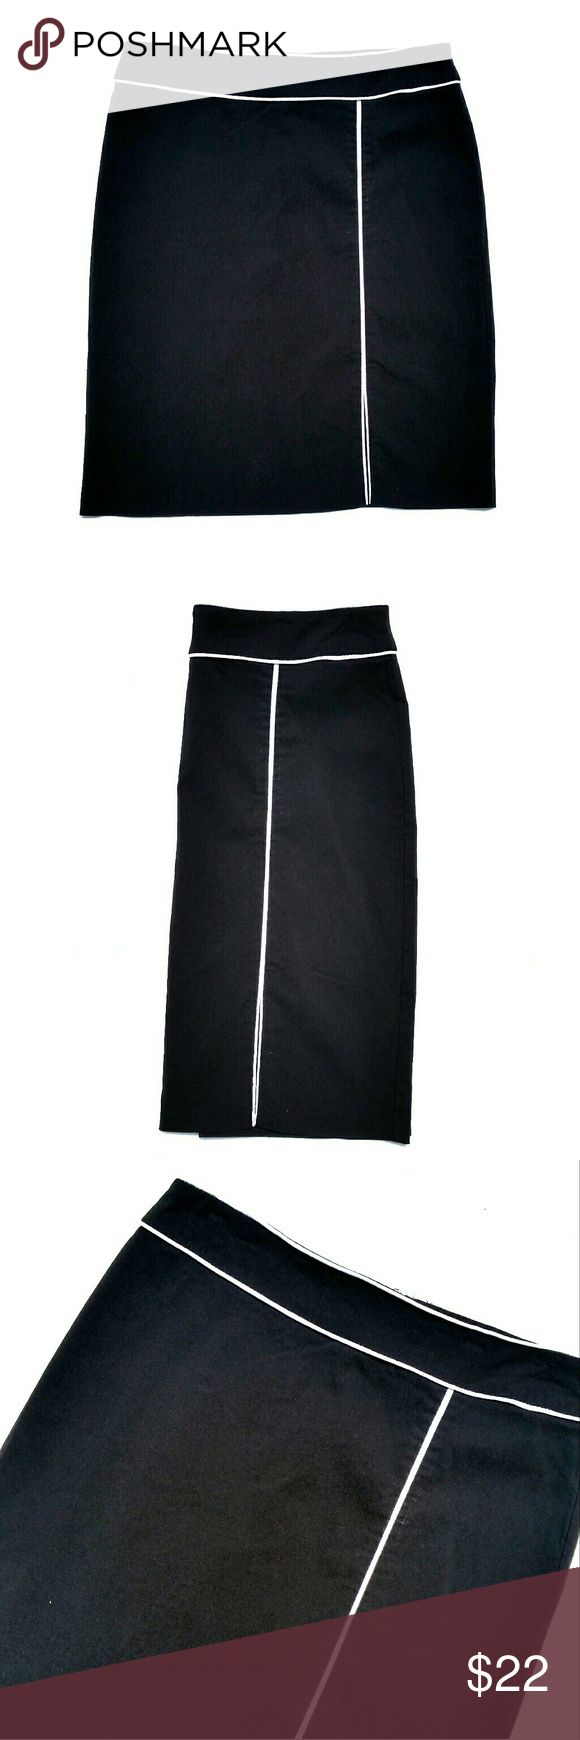 {Black & White Piped Pencil Office Skirt} Classic pencil skirt featuring white piping around the waist and down the front, ending in a small slit. Back zipper. Stretchy fabric made of rayon/nylon/spandex. Good condition.   Waist: 32 inches  Length: 22 inches   15% off bundles. Reasonable offers accepted. Meryl Diamond  Skirts Pencil